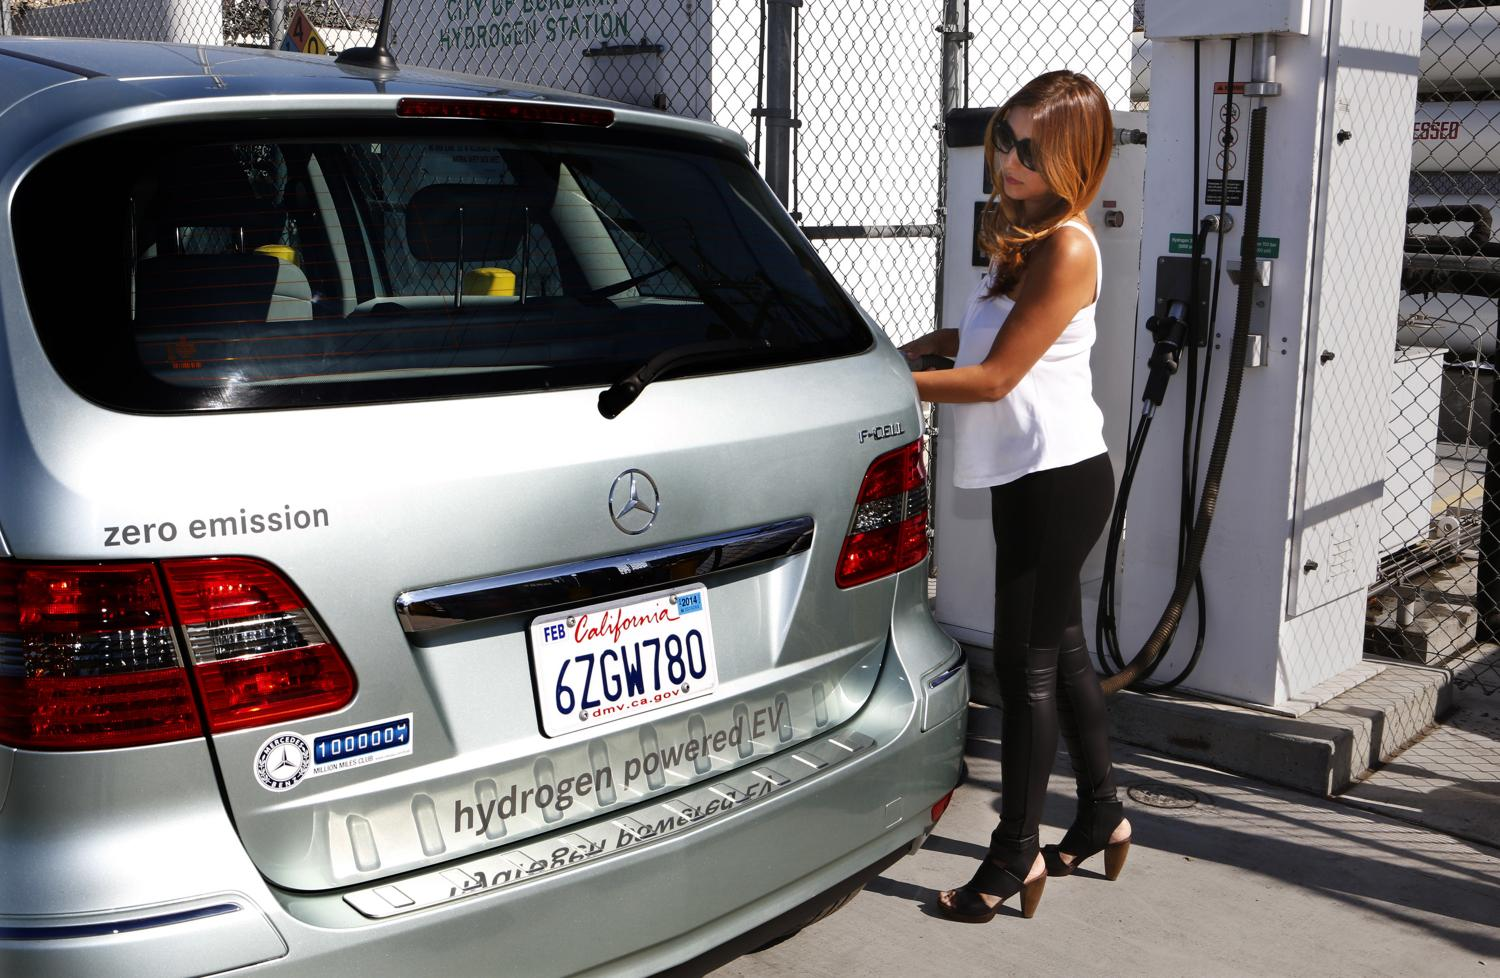 Sally Poppe, right, demonstrates filling her car at the hydrogen fuel station on Oct. 21, 2014 at Hydrogen Frontier Inc. in Burbank, Calif., owned by her husband Dan Poppe, left. Automakers are turning to another new technology - hydrogen fuel cells that have zero emissions.